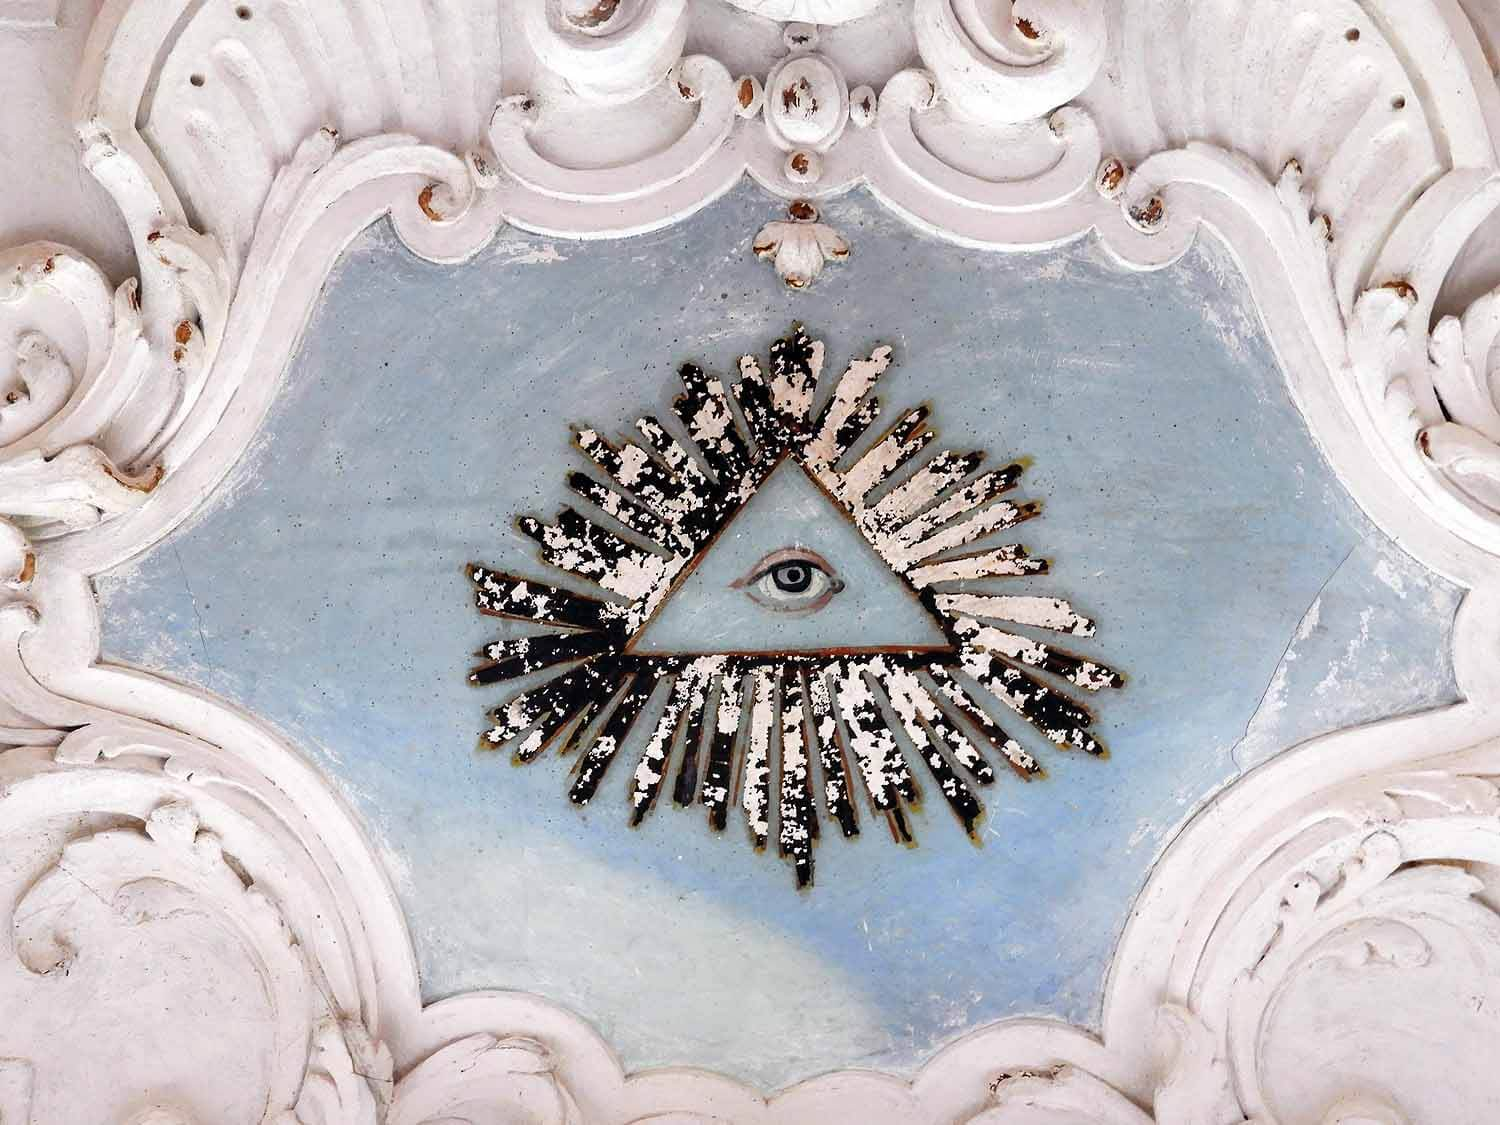 germany-salem-monastery-palace-all-seeing-eye.jpg